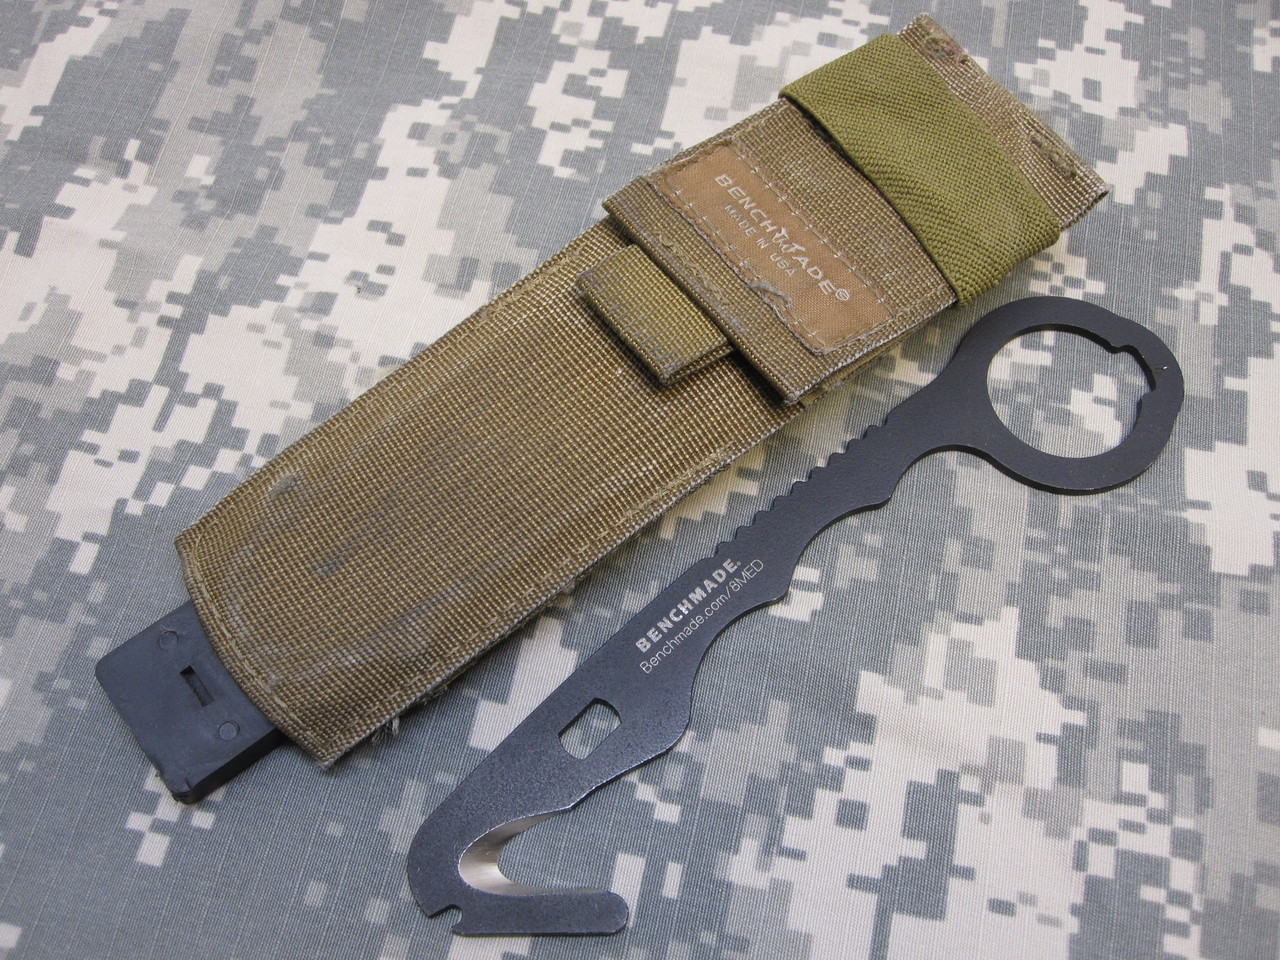 BENCHMADE 8MED RESCUE HOOK KNIFE SAFETY SEATBELT STRAP CUTTER a8